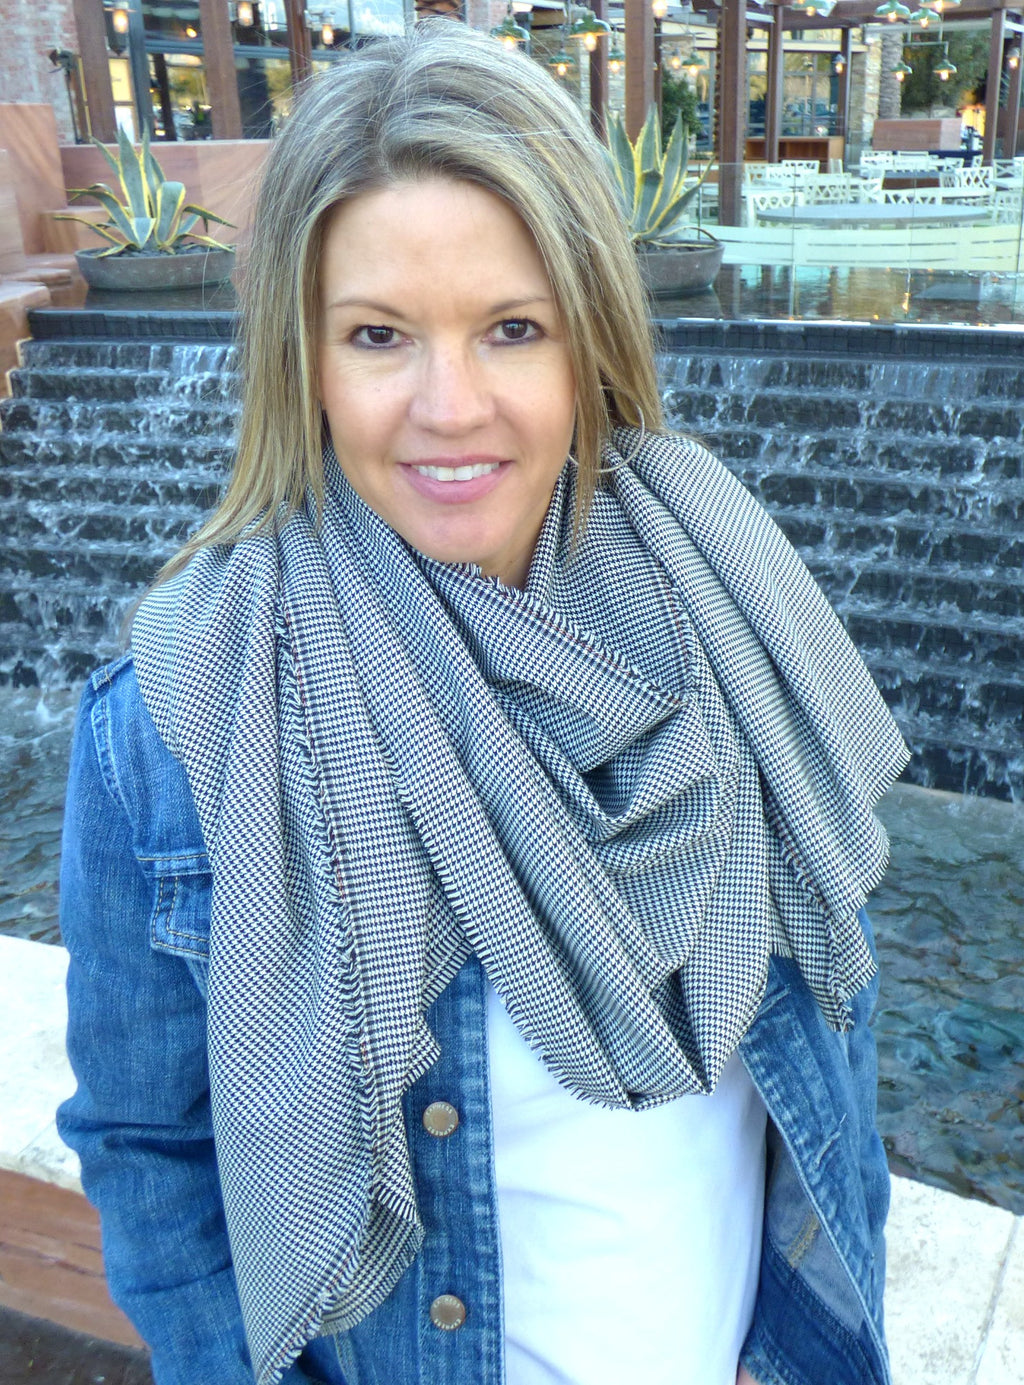 Scarves - Black and White Hounds Tooth Blanket Scarf - Ella Winston